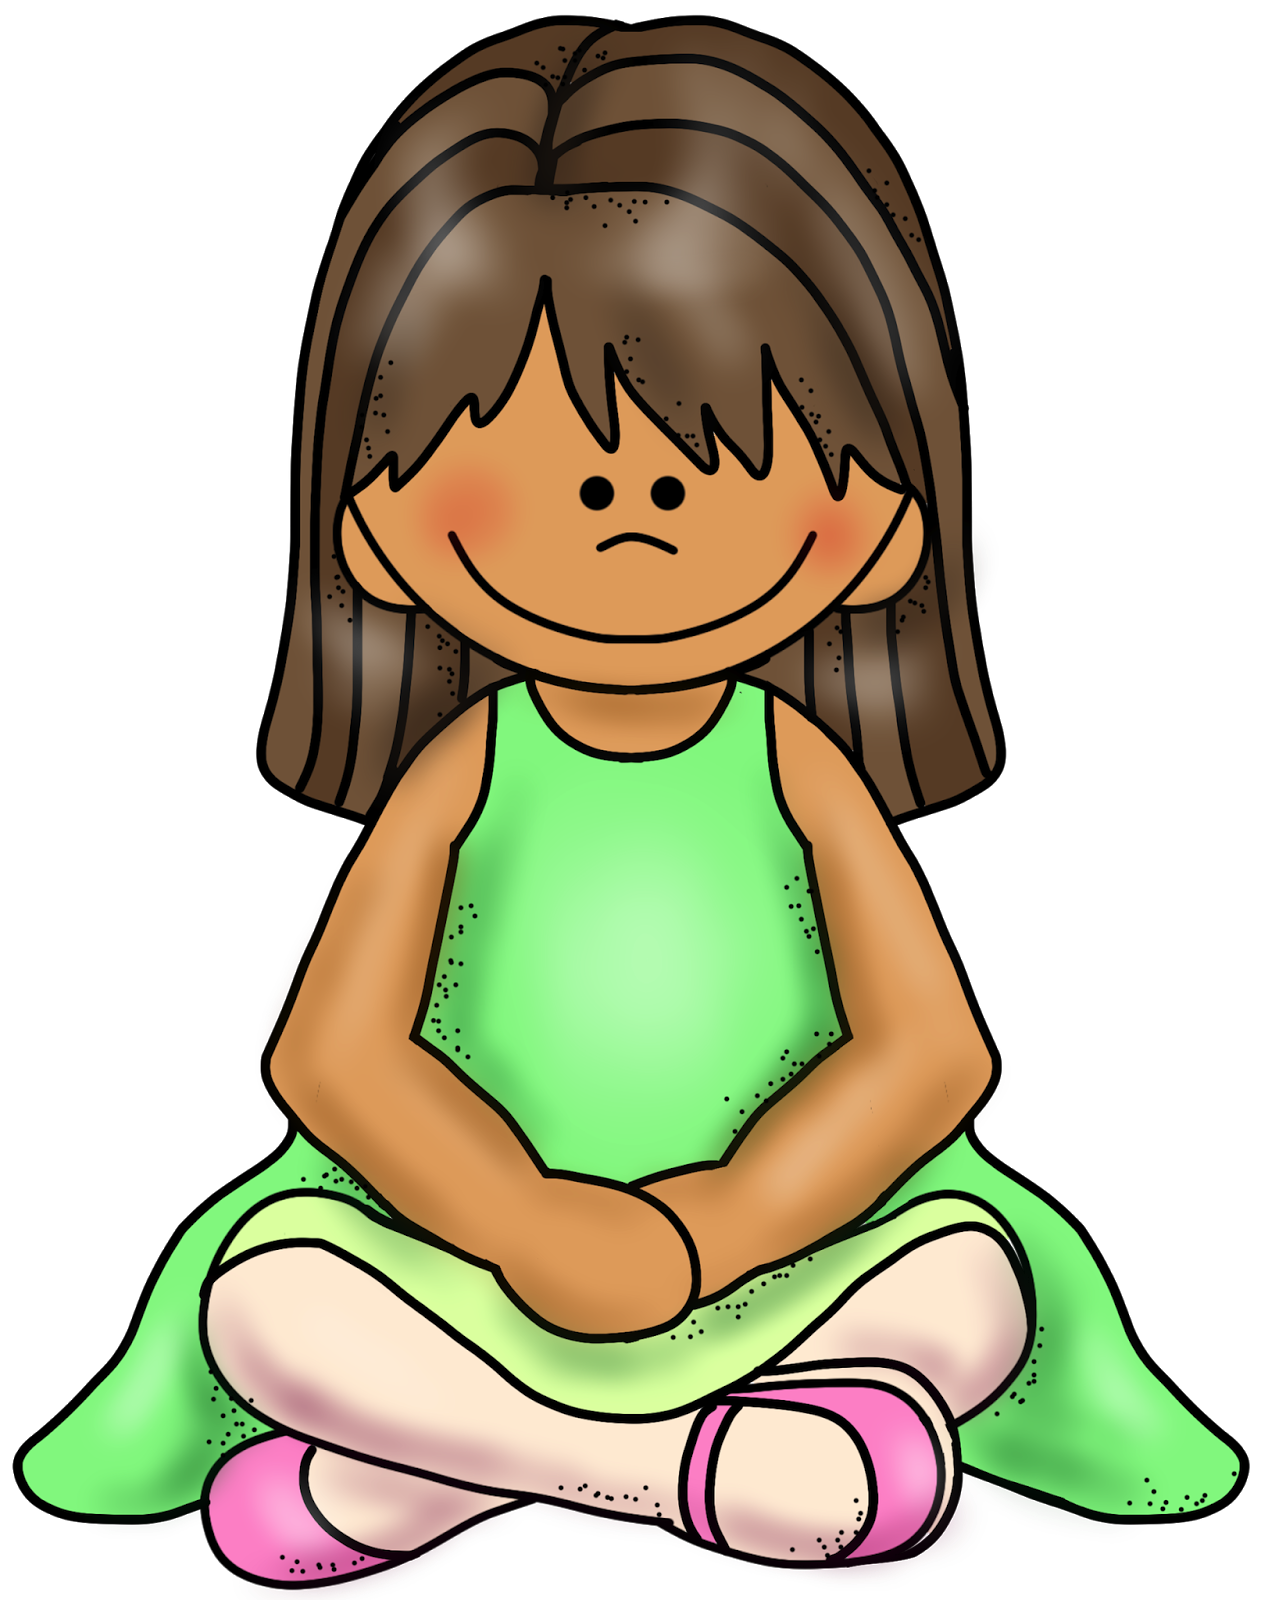 Child sitting criss cross clipart graphic black and white Sit Criss Cross Clipart - Free Clipart graphic black and white